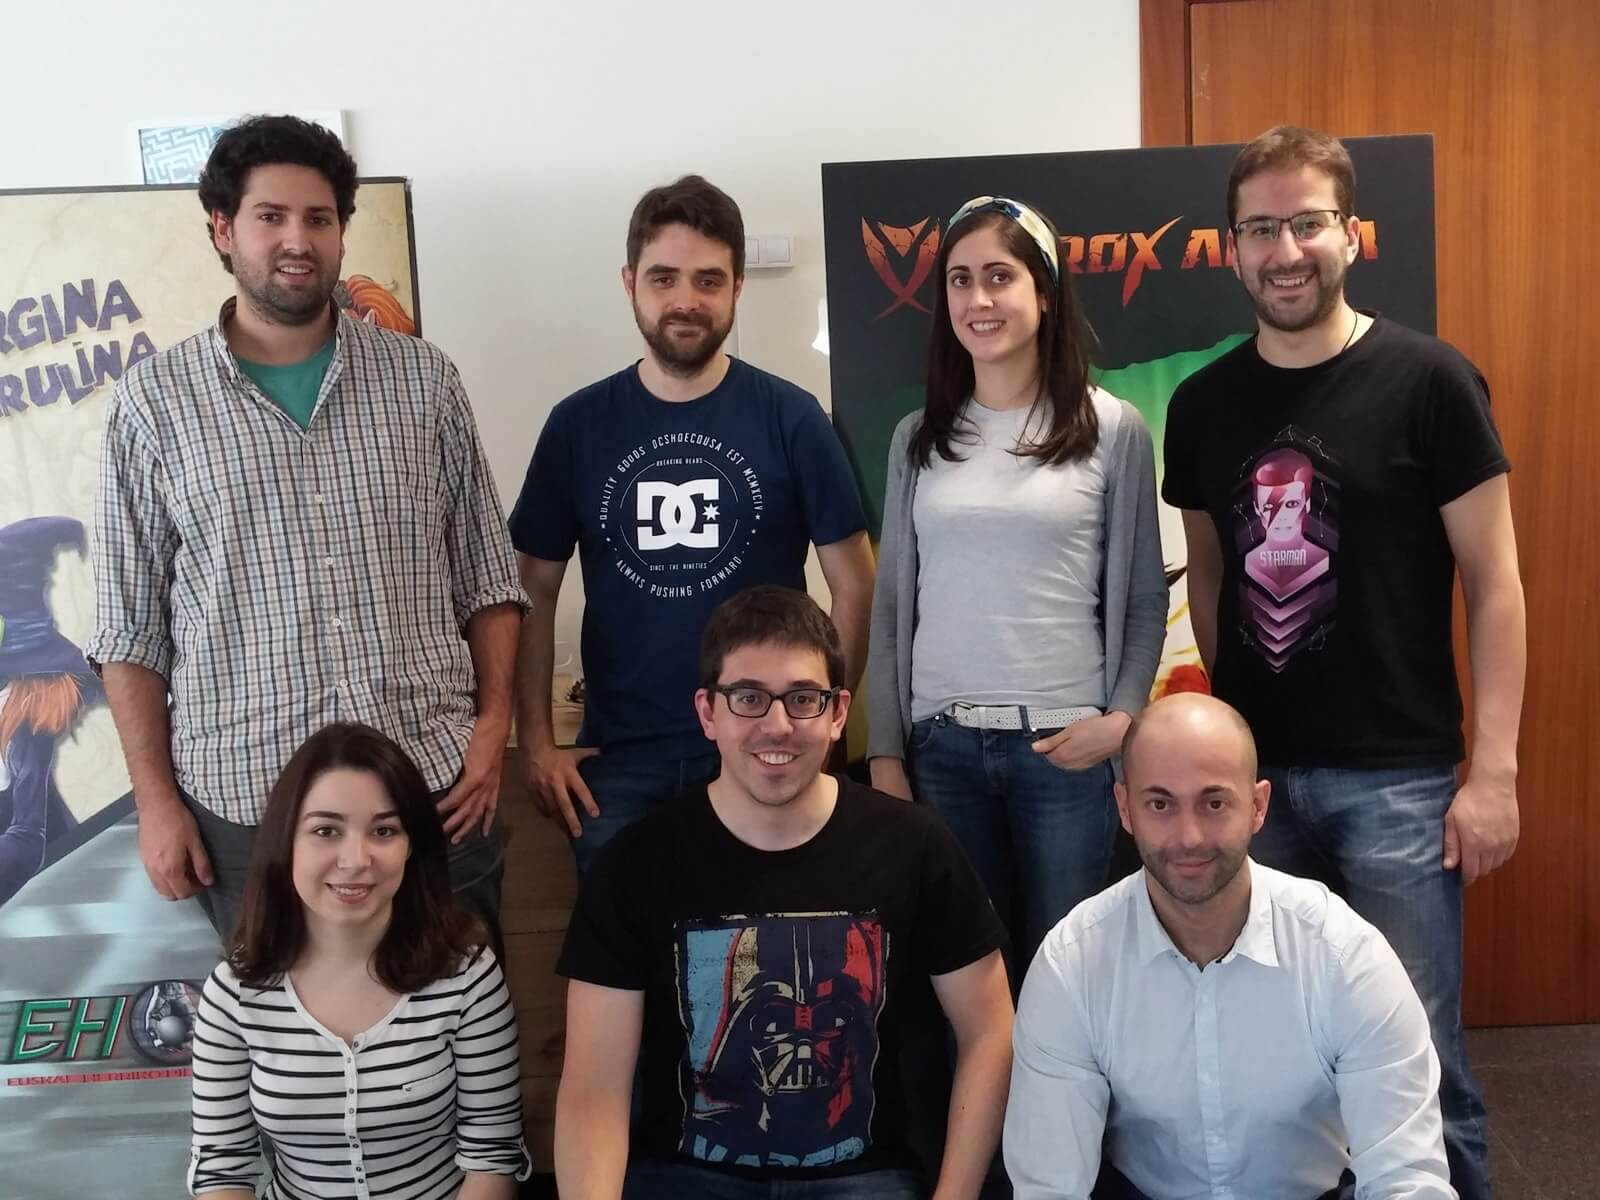 The Binary Soul team posing in front of banners depicting characters from their games